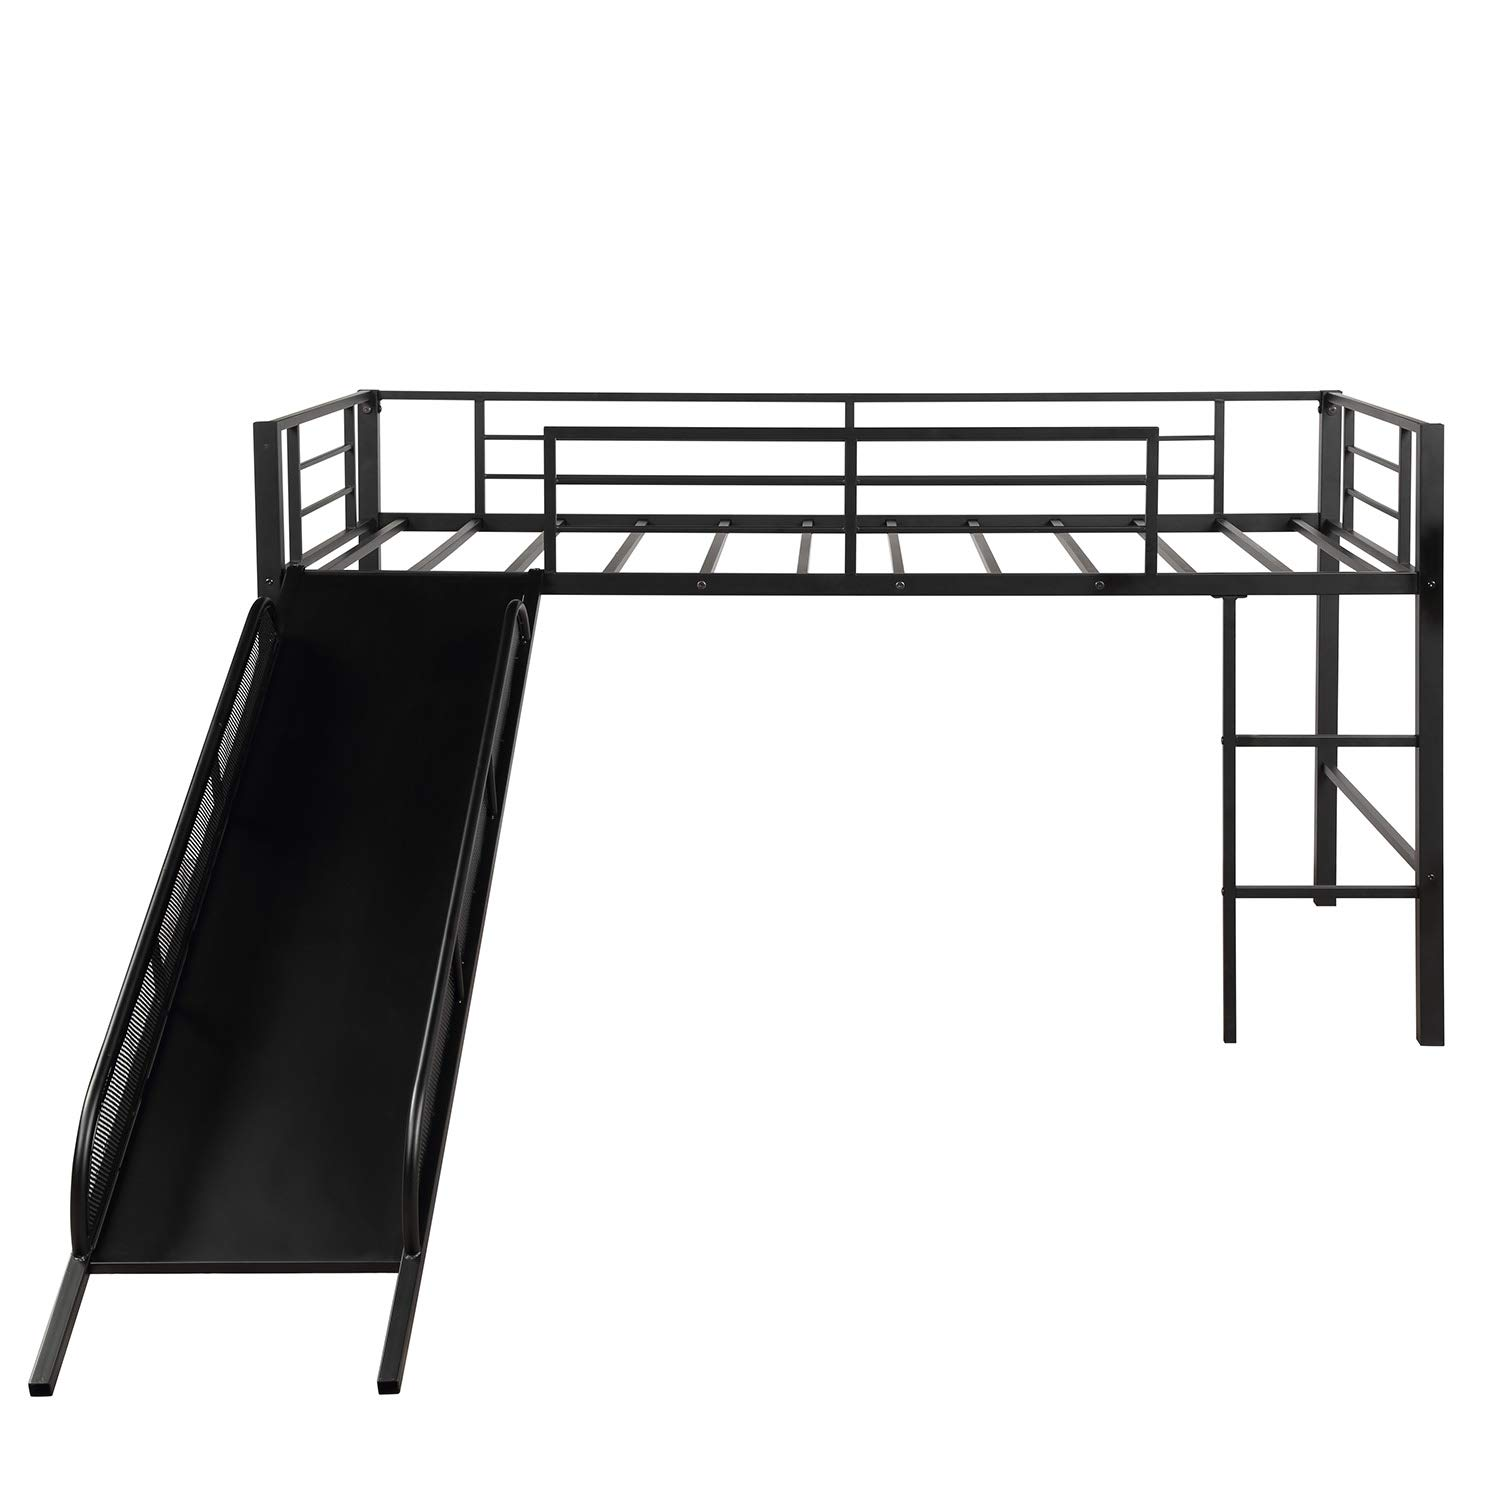 Hooseng, Twin Metal Bed, Low loft, Strong, Best Choice for Child,No Box Spring Needed, Three Colors Available Slide, DEEP Black